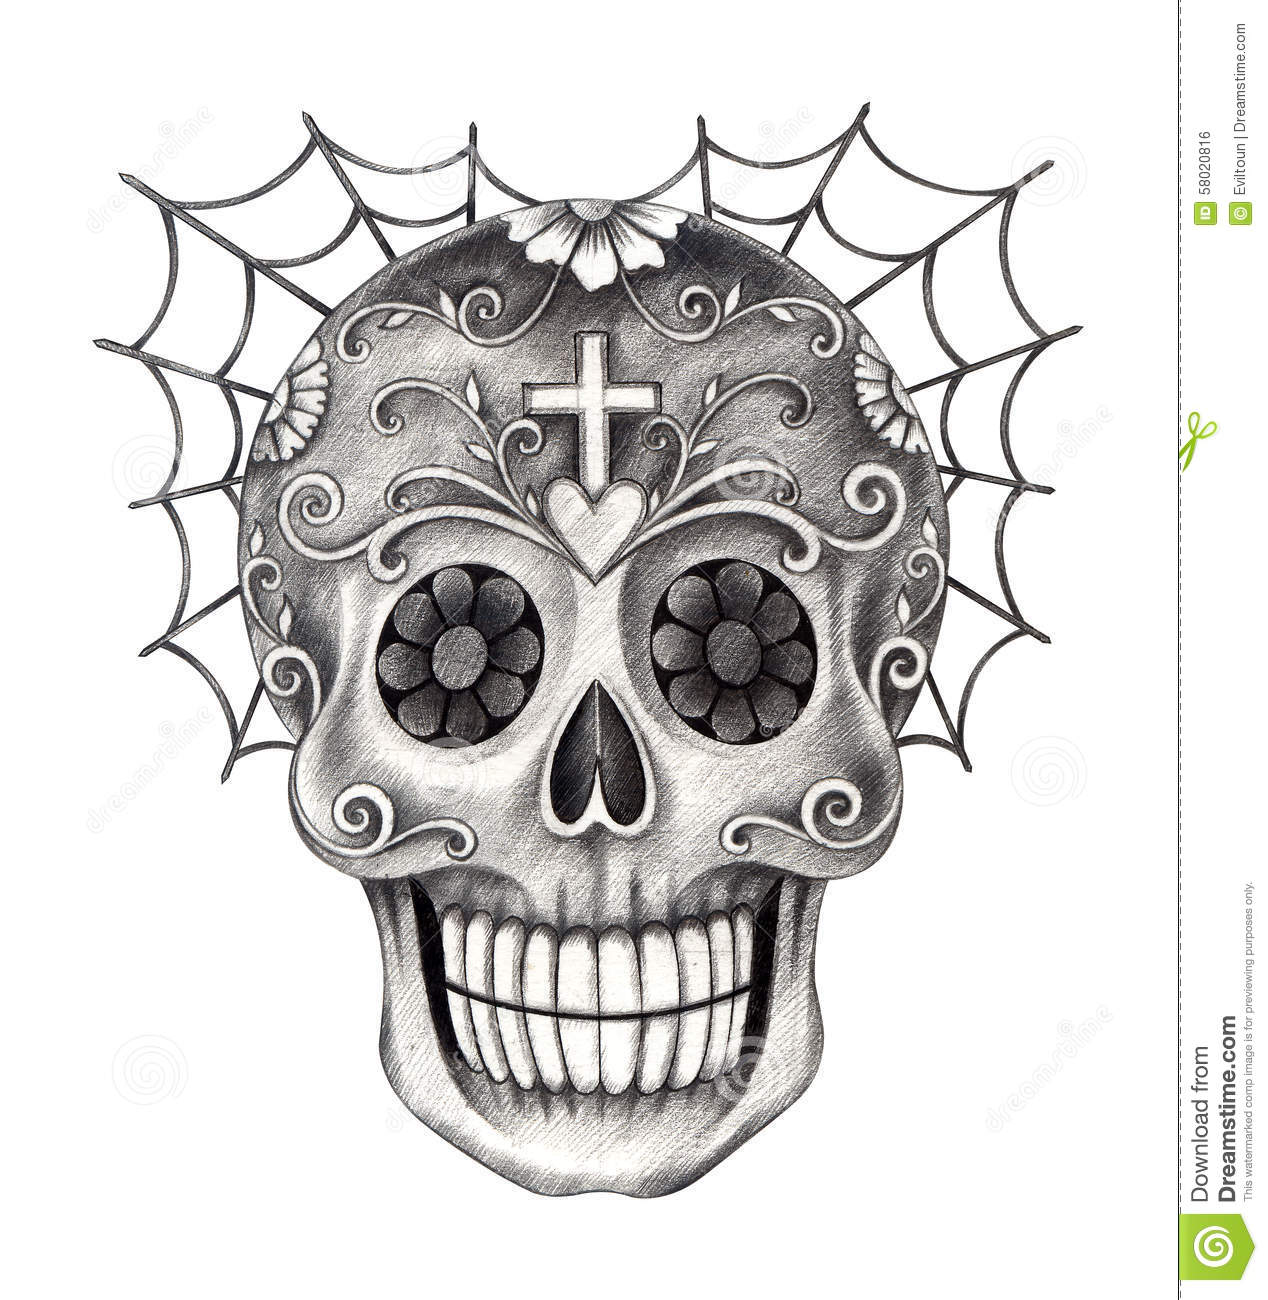 Royalty Free Stock Photography Skull Drawing Vector Use Image35712067 furthermore 14 Dibujos Para Colorear En Halloween additionally Killer Clown 207346233 in addition Clipart Cute Ghost also Colorear Hombre Lobo. on scary face designs for halloween